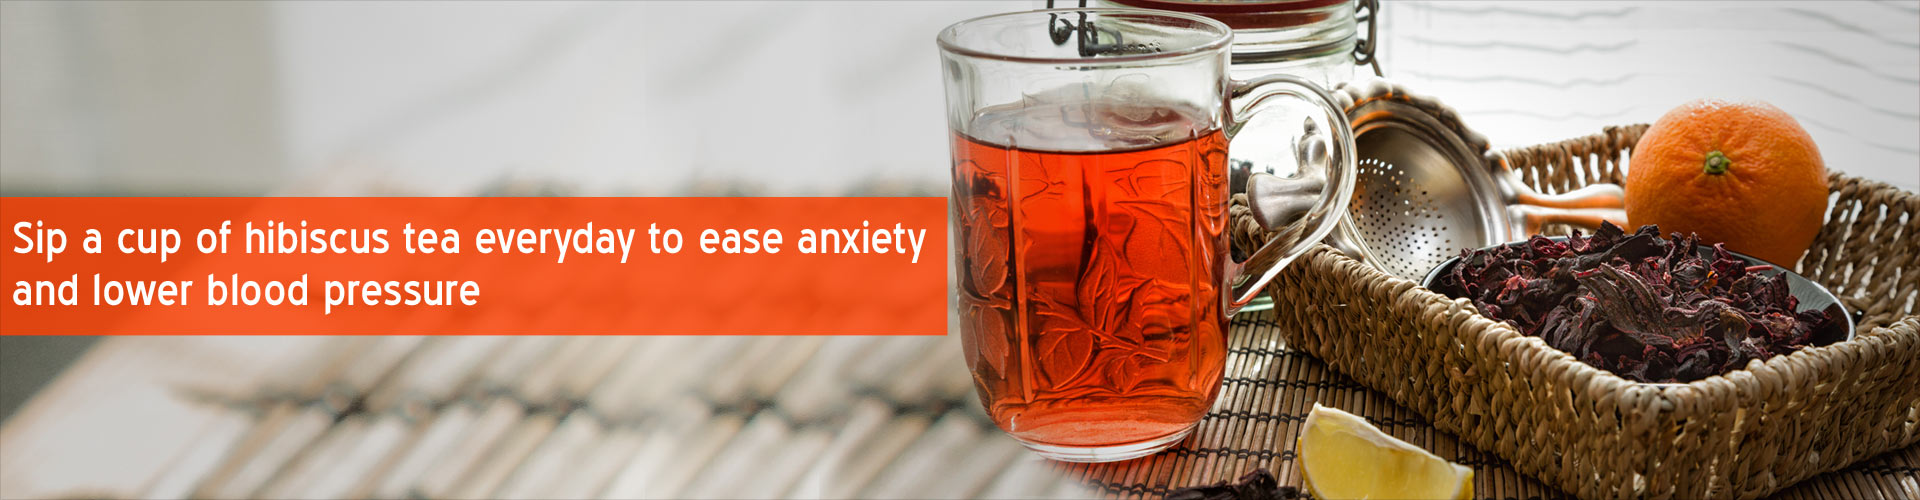 Sip a cup of hibiscus tea everyday to ease anxiety and lower blood pressure